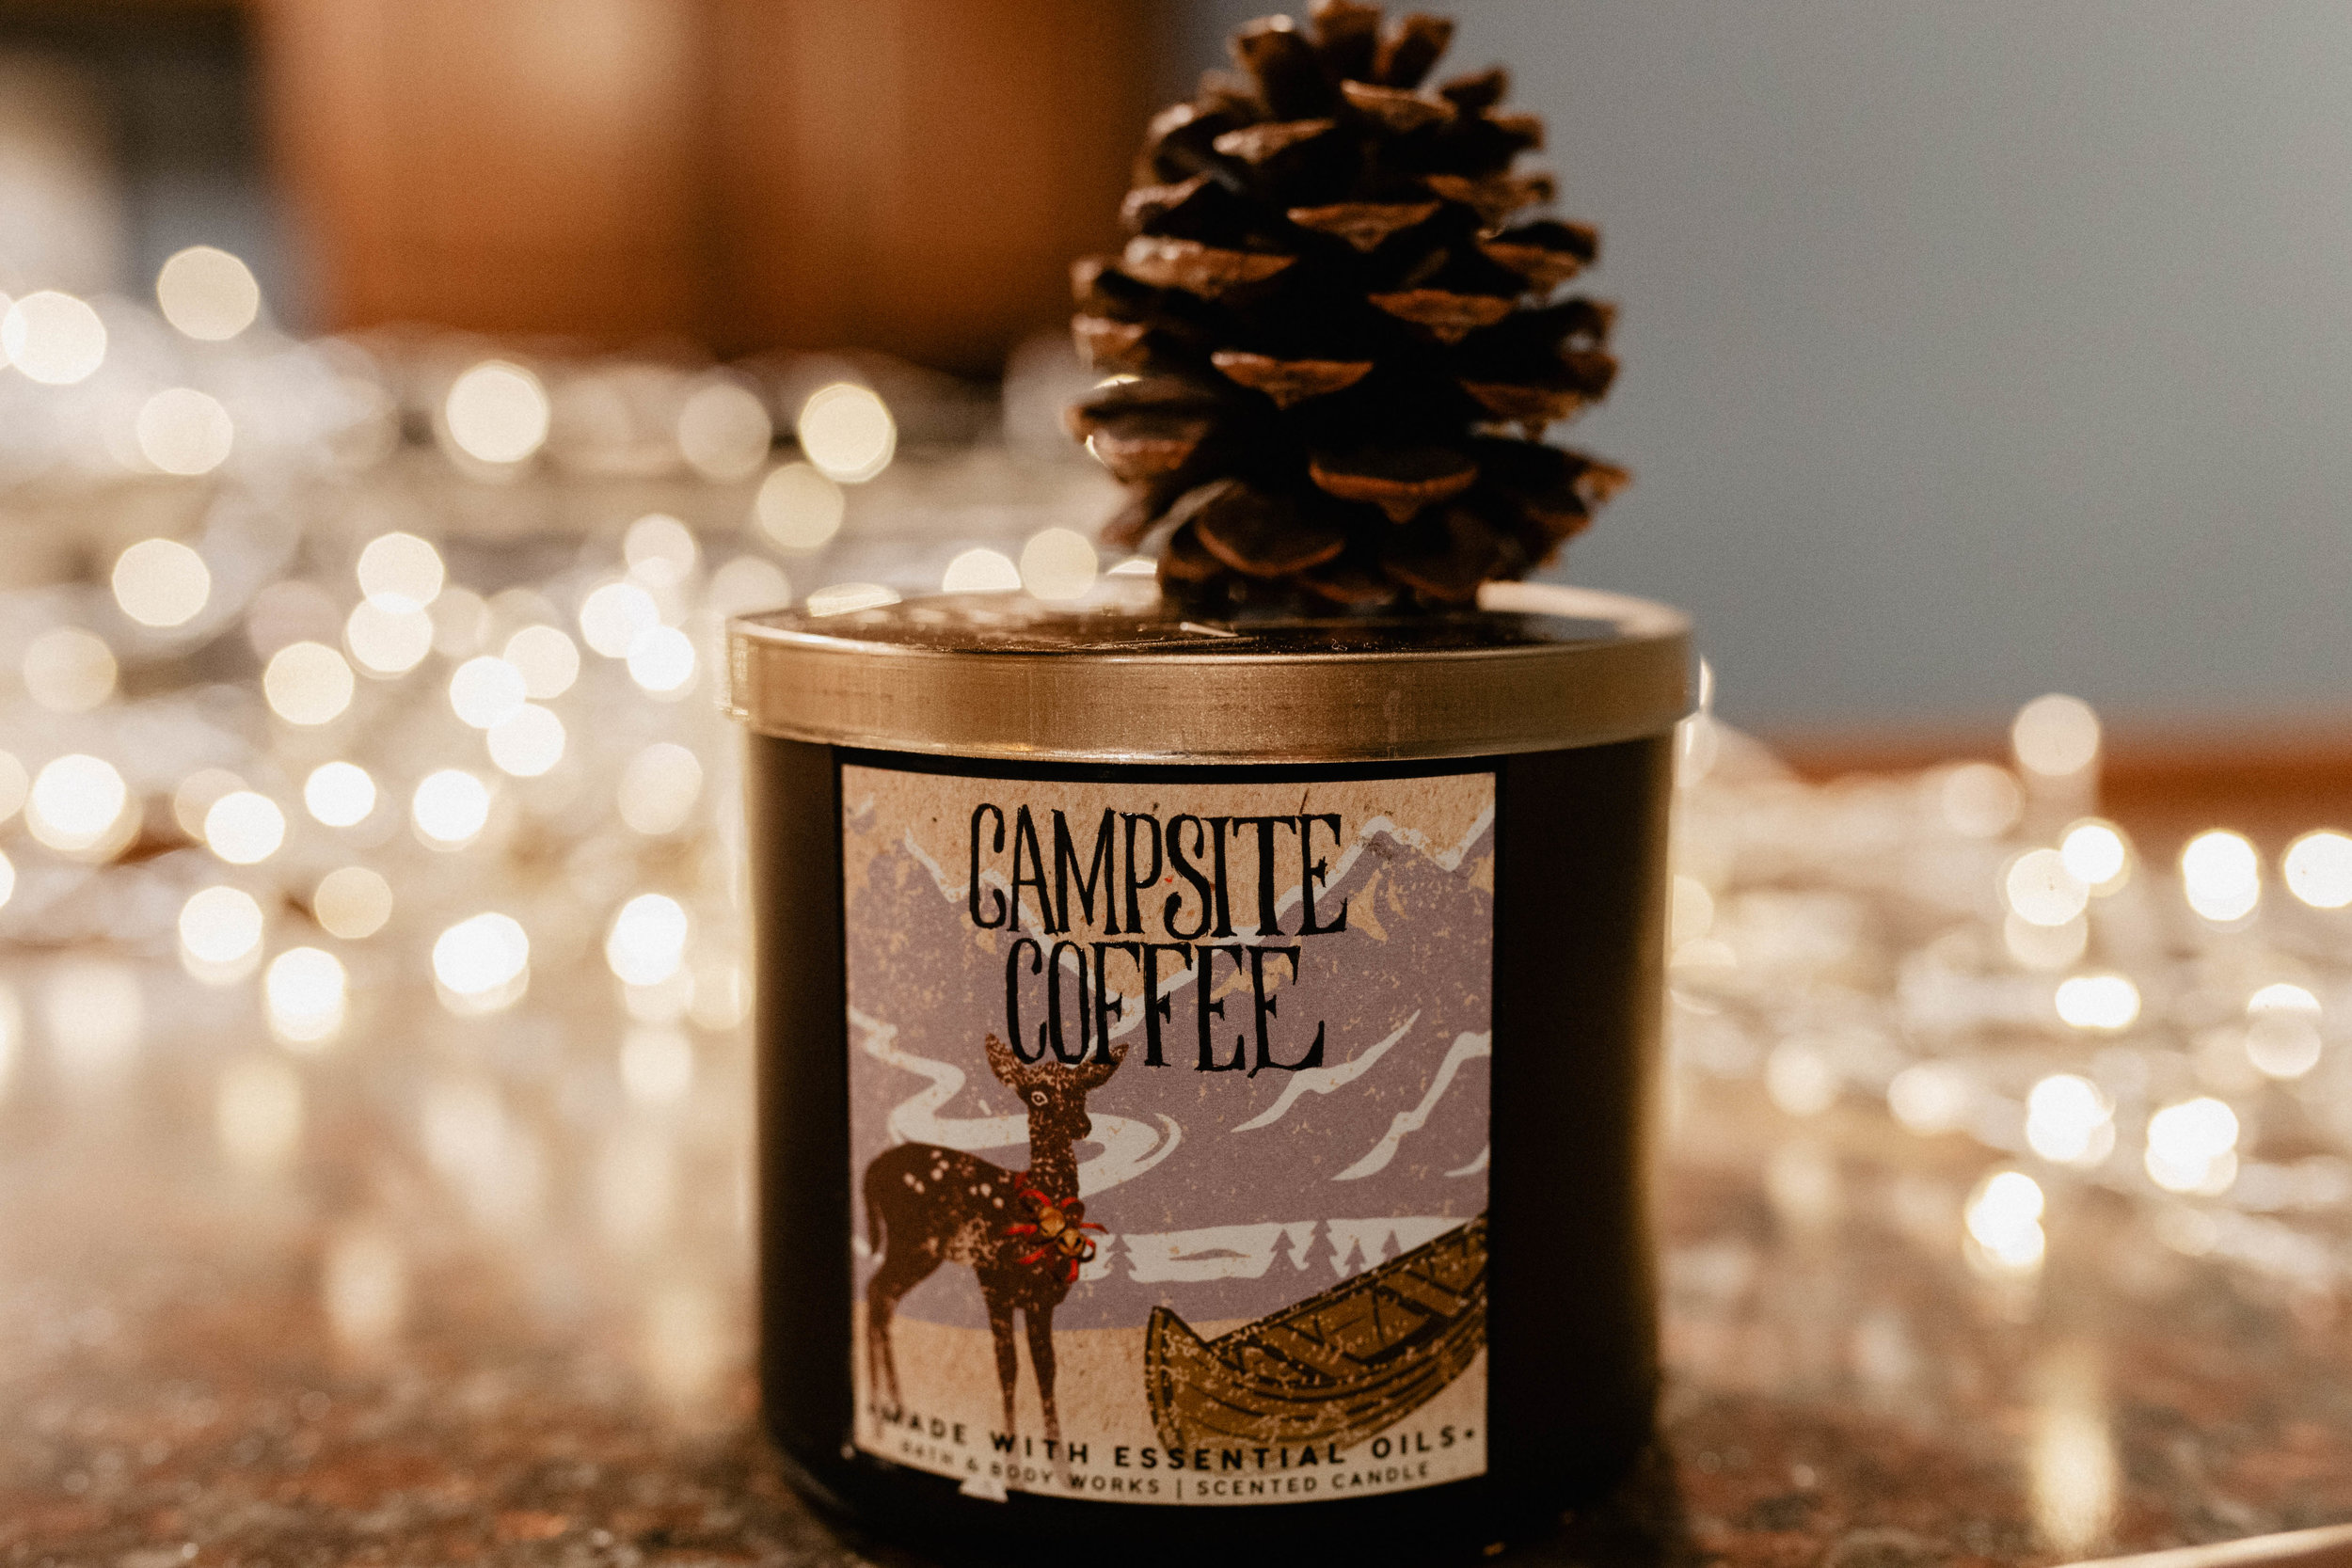 """CAMPSIDE COFFEE - Campsie AND coffee?? I'll take twenty. I loved the Marshmallow Fireside candle from Bath and Body Works, so when I saw coffee combined with similar scents, I HAD to grab this one too. Usually I stay away from coffee (and chocolate) """"scents"""" because they typically smell extremely fake and it's never the same. I decided to give this one a go and I'm SO glad I did. It's delicious smelling (with vanilla scents). Seriously smells like you are brewing coffee over a campfire."""